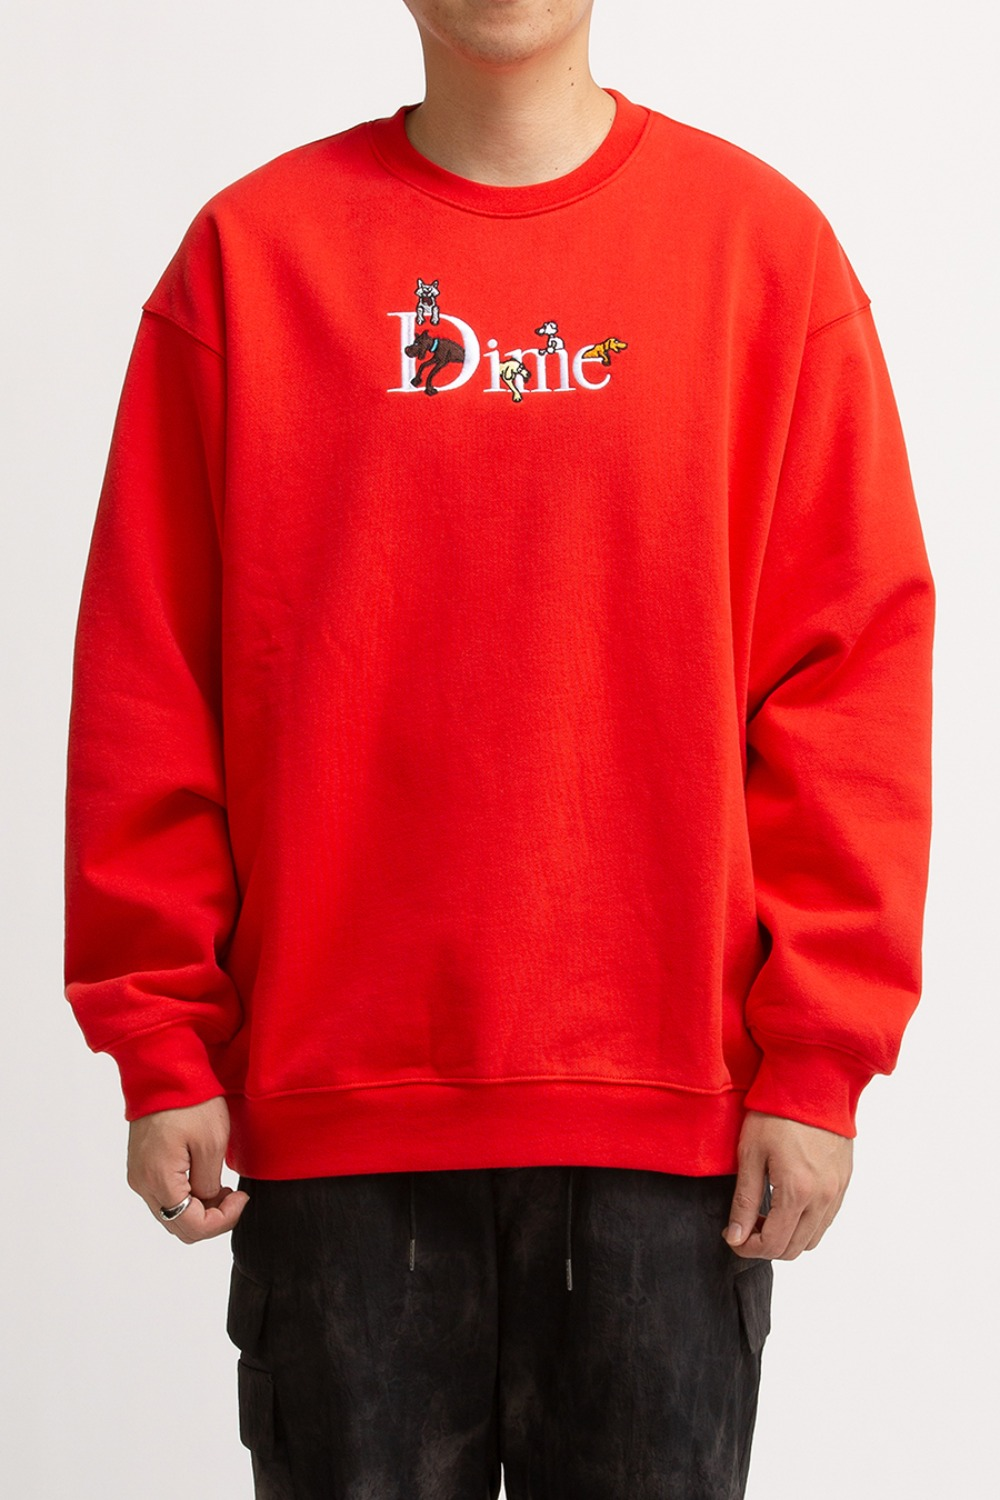 DOG CLASSIC LOGO CREWNECK RED